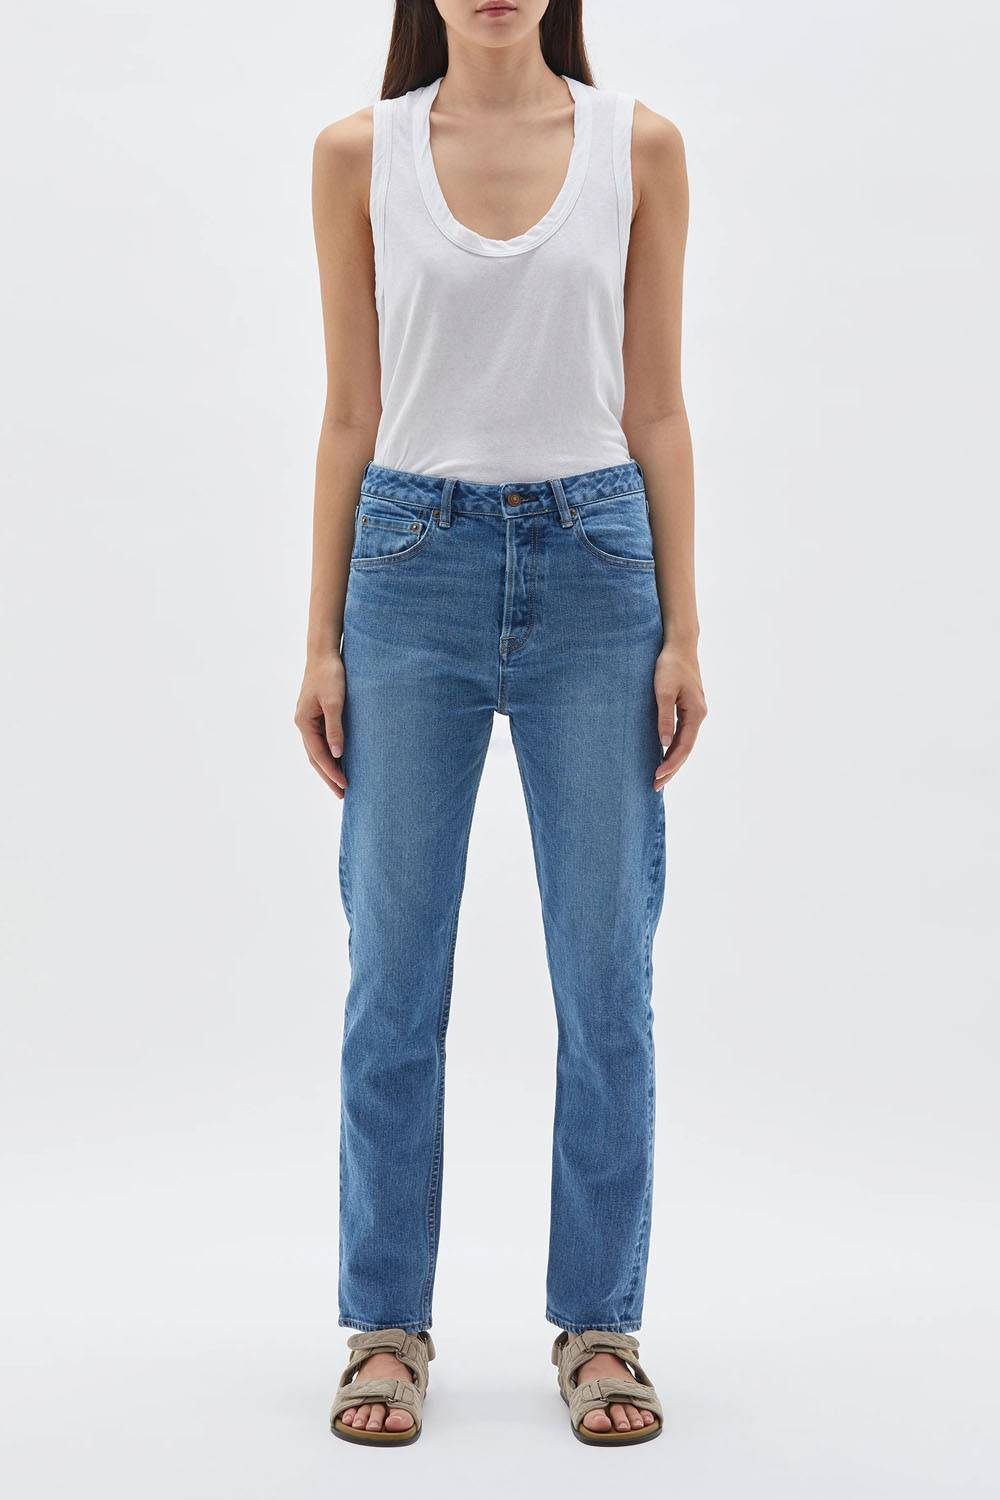 bassike australian made sustainable jeans